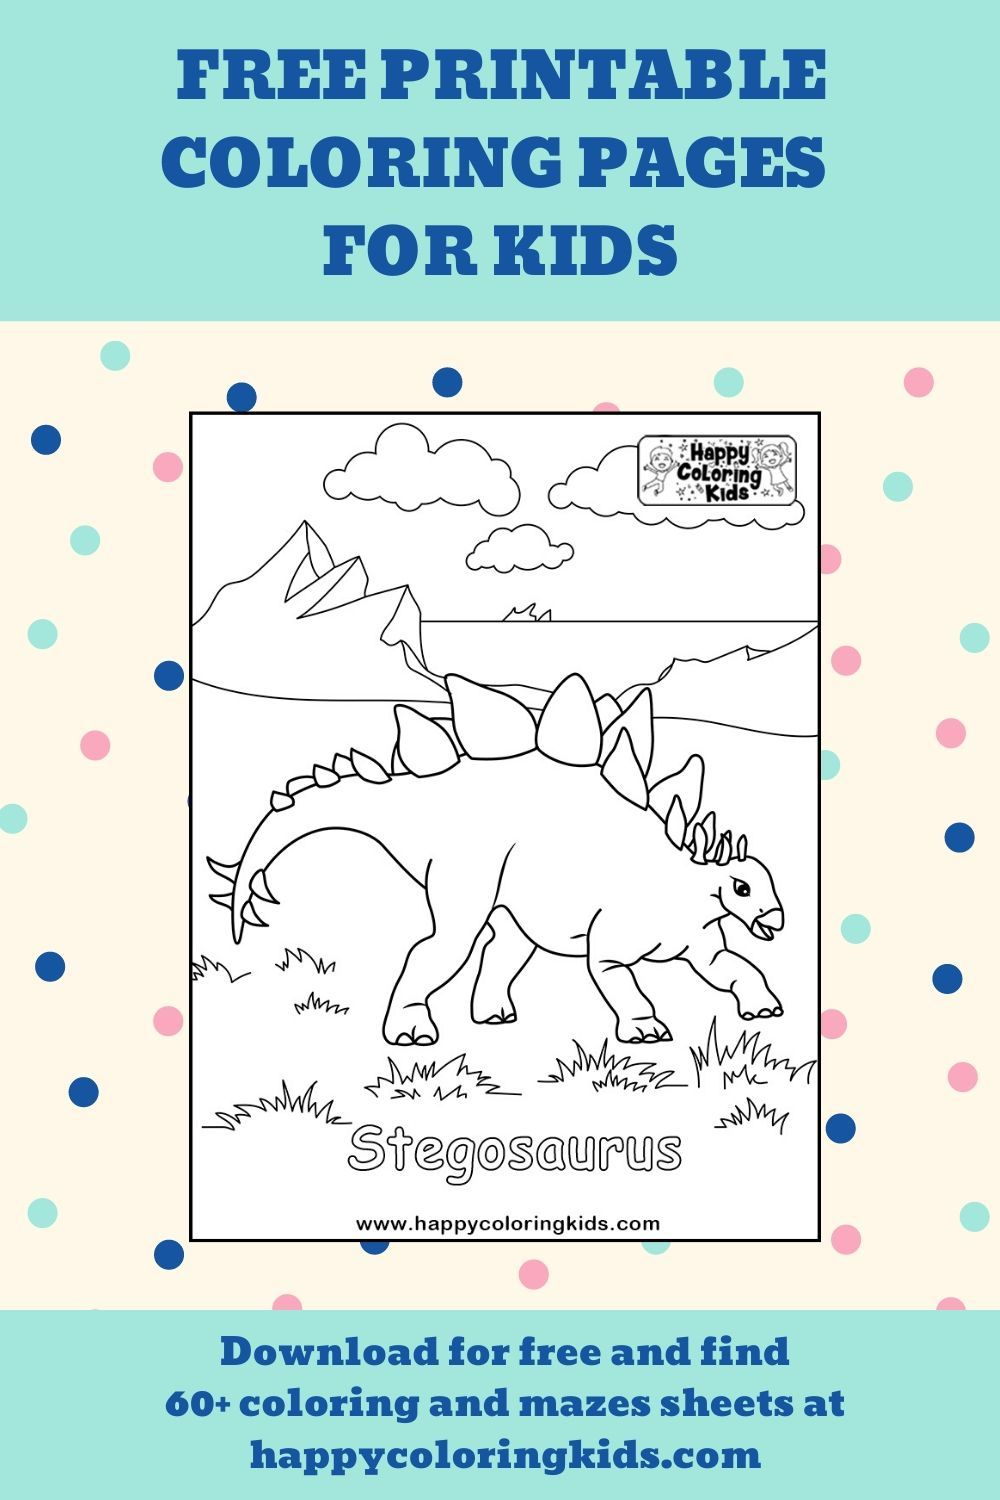 Free printable coloring pages of dinosaurs Stegosaurus